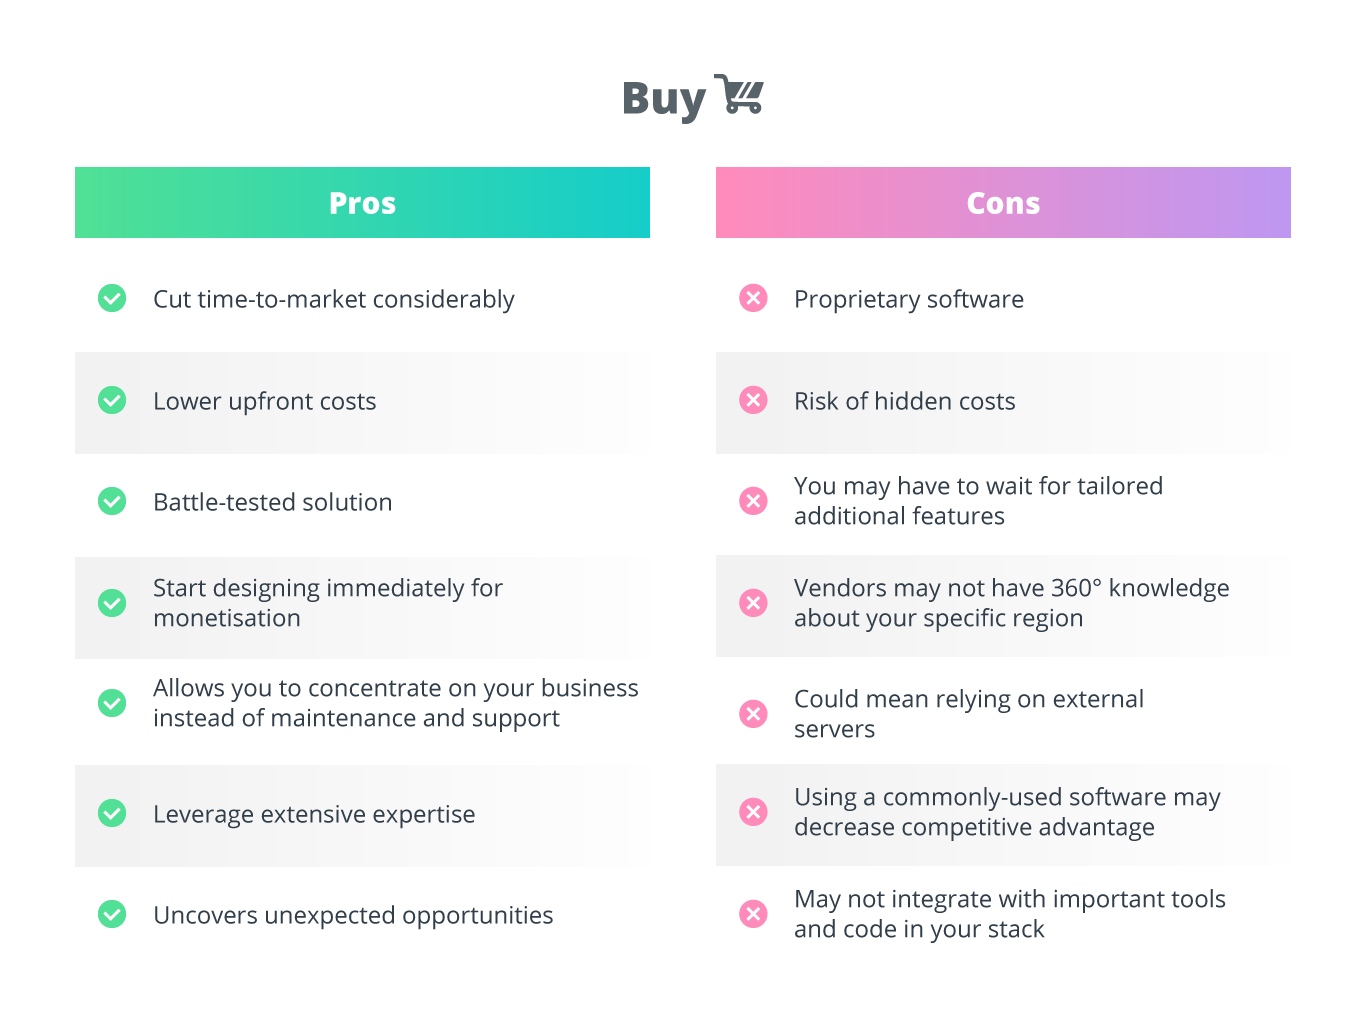 List of pros and cons of buy